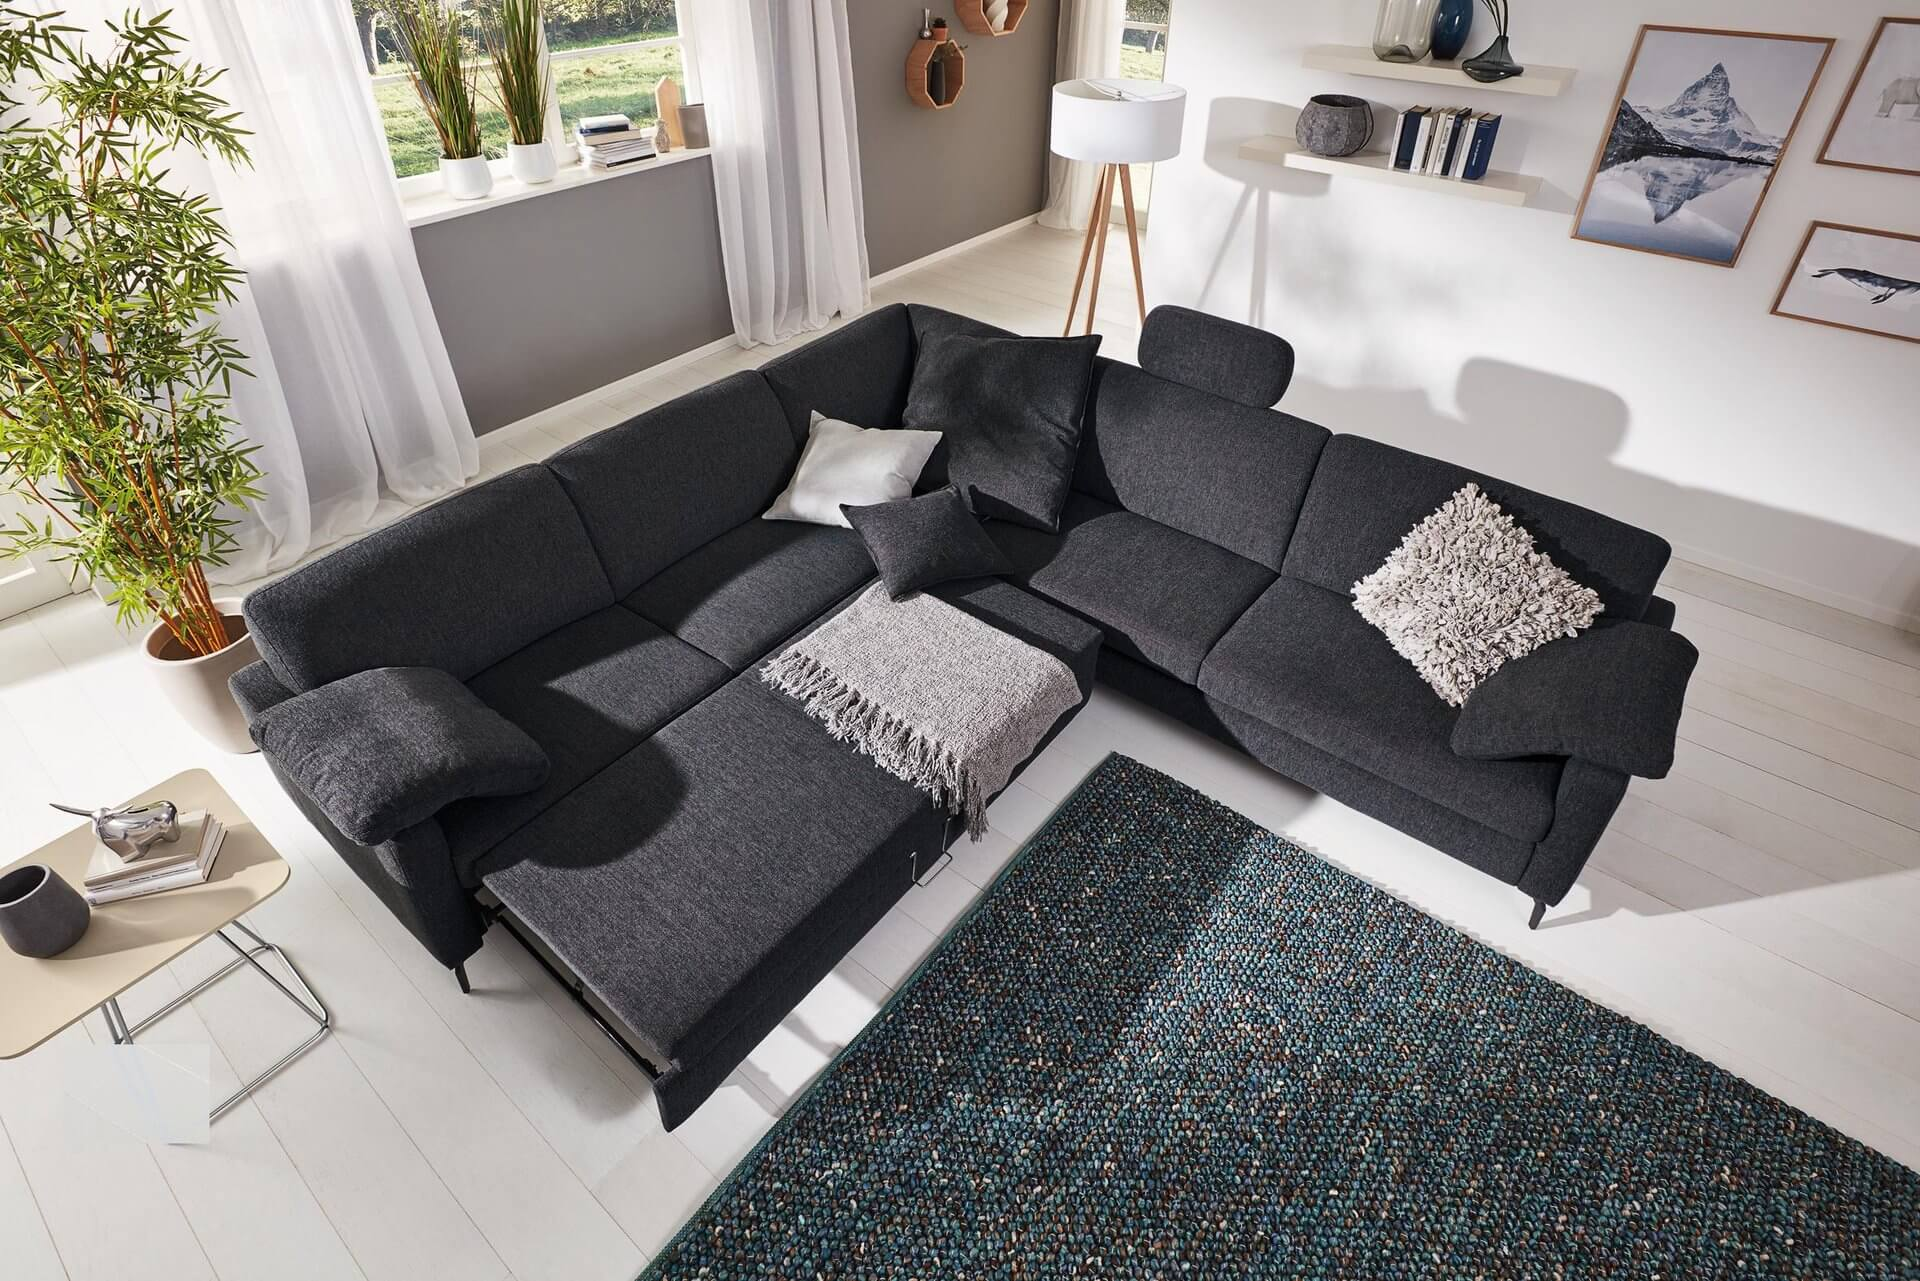 Full Size of Boxspring Sofa Mr 2875 Musterring Xora L Form Leder Braun Petrol Delife Schlaffunktion Mit Holzfüßen Chesterfield Relaxfunktion Langes Schlafsofa Sofa Boxspring Sofa